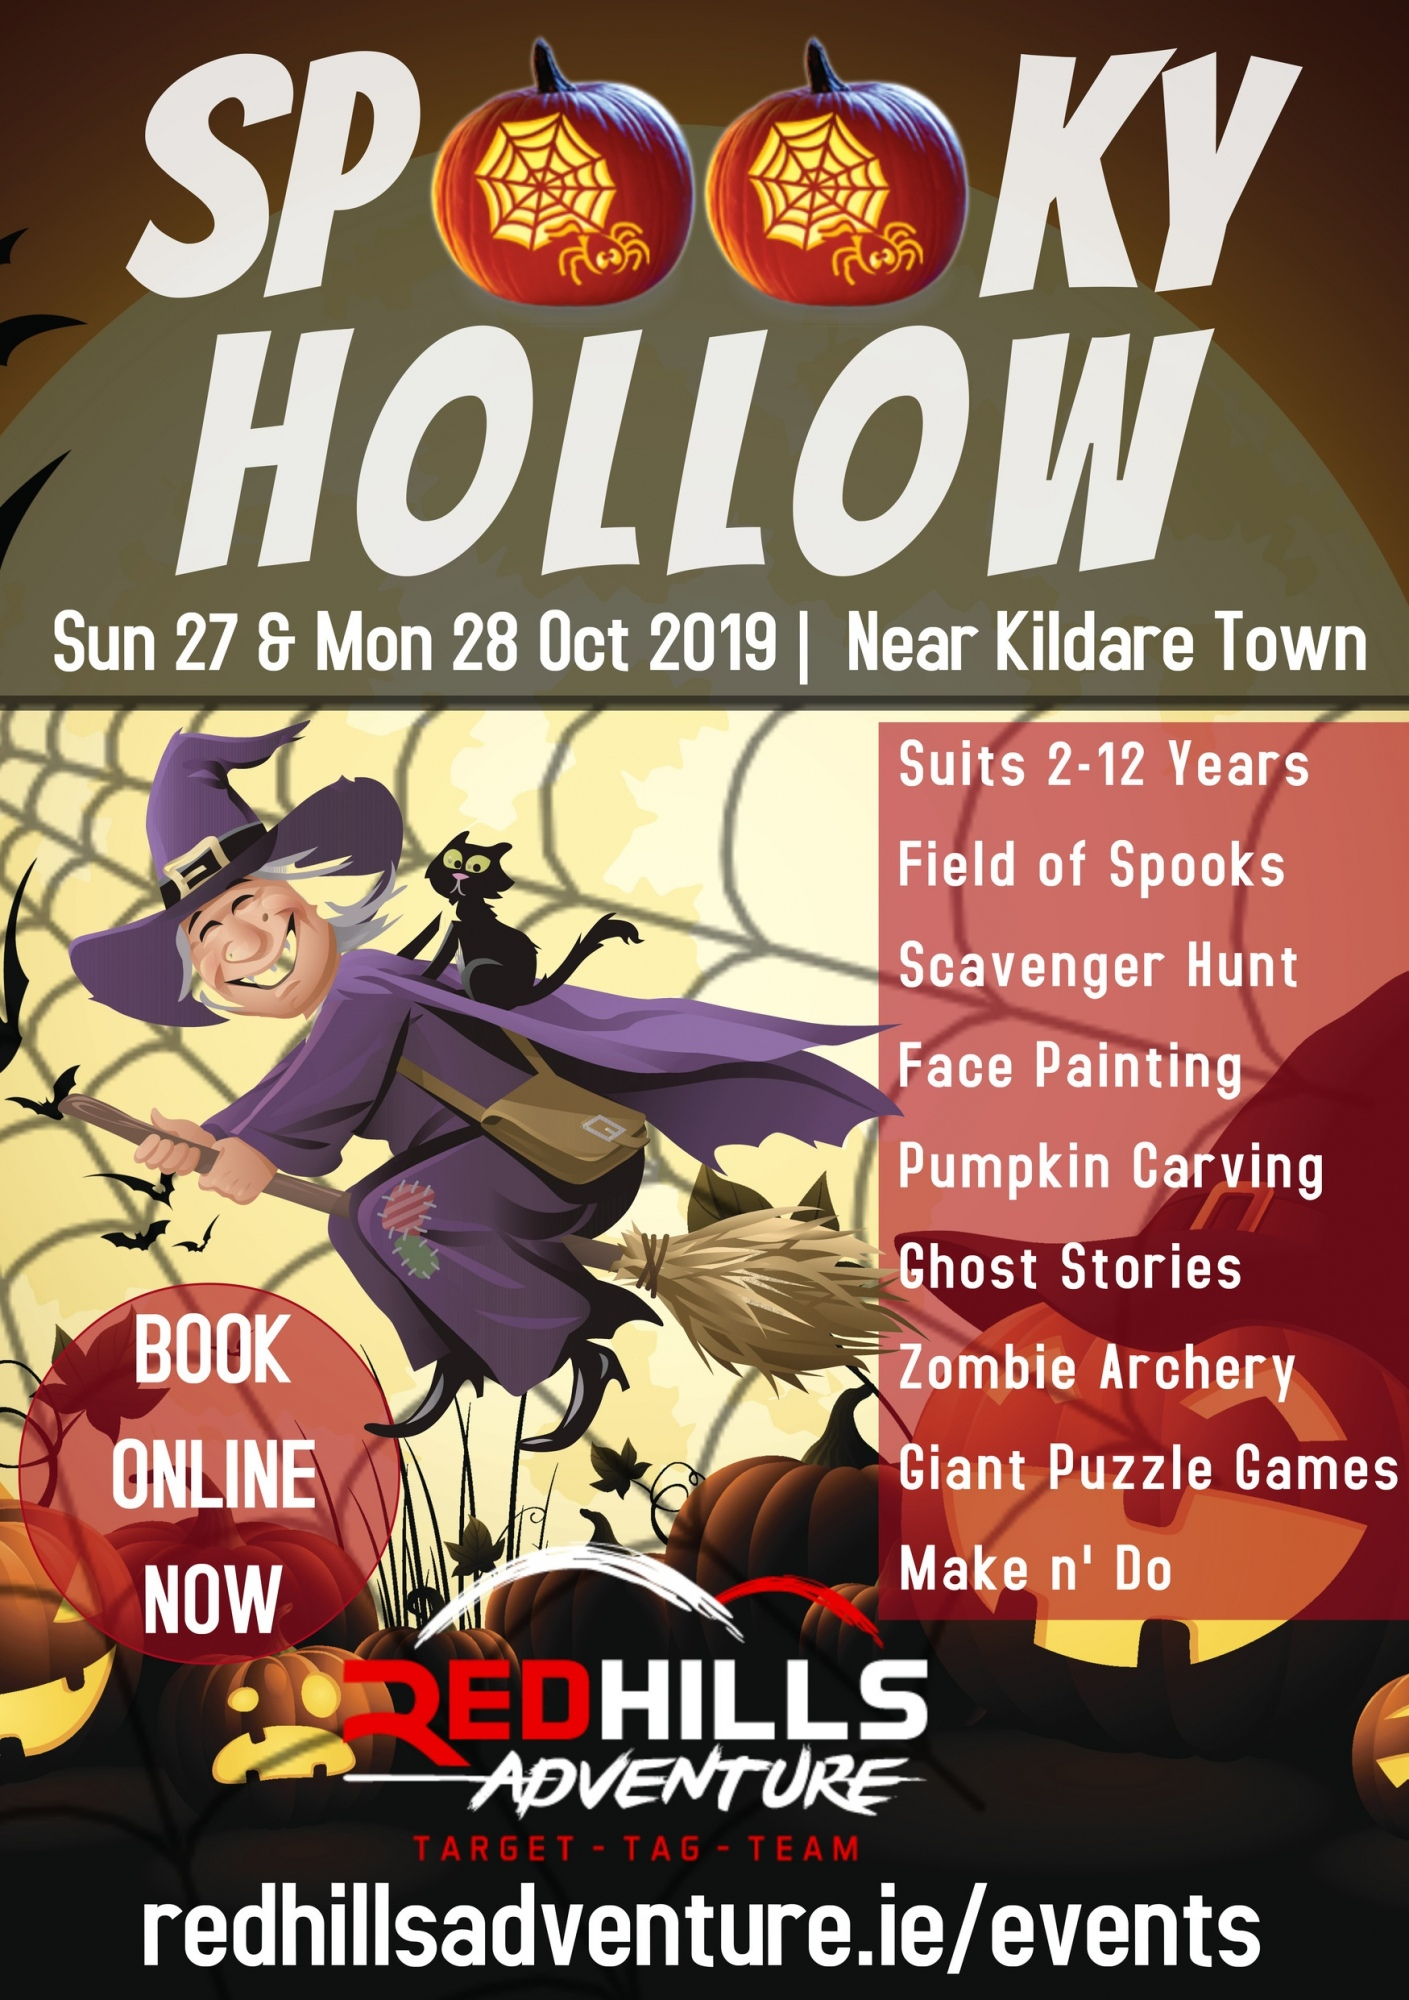 spooky hollow 2019 signage 6 x 4 002